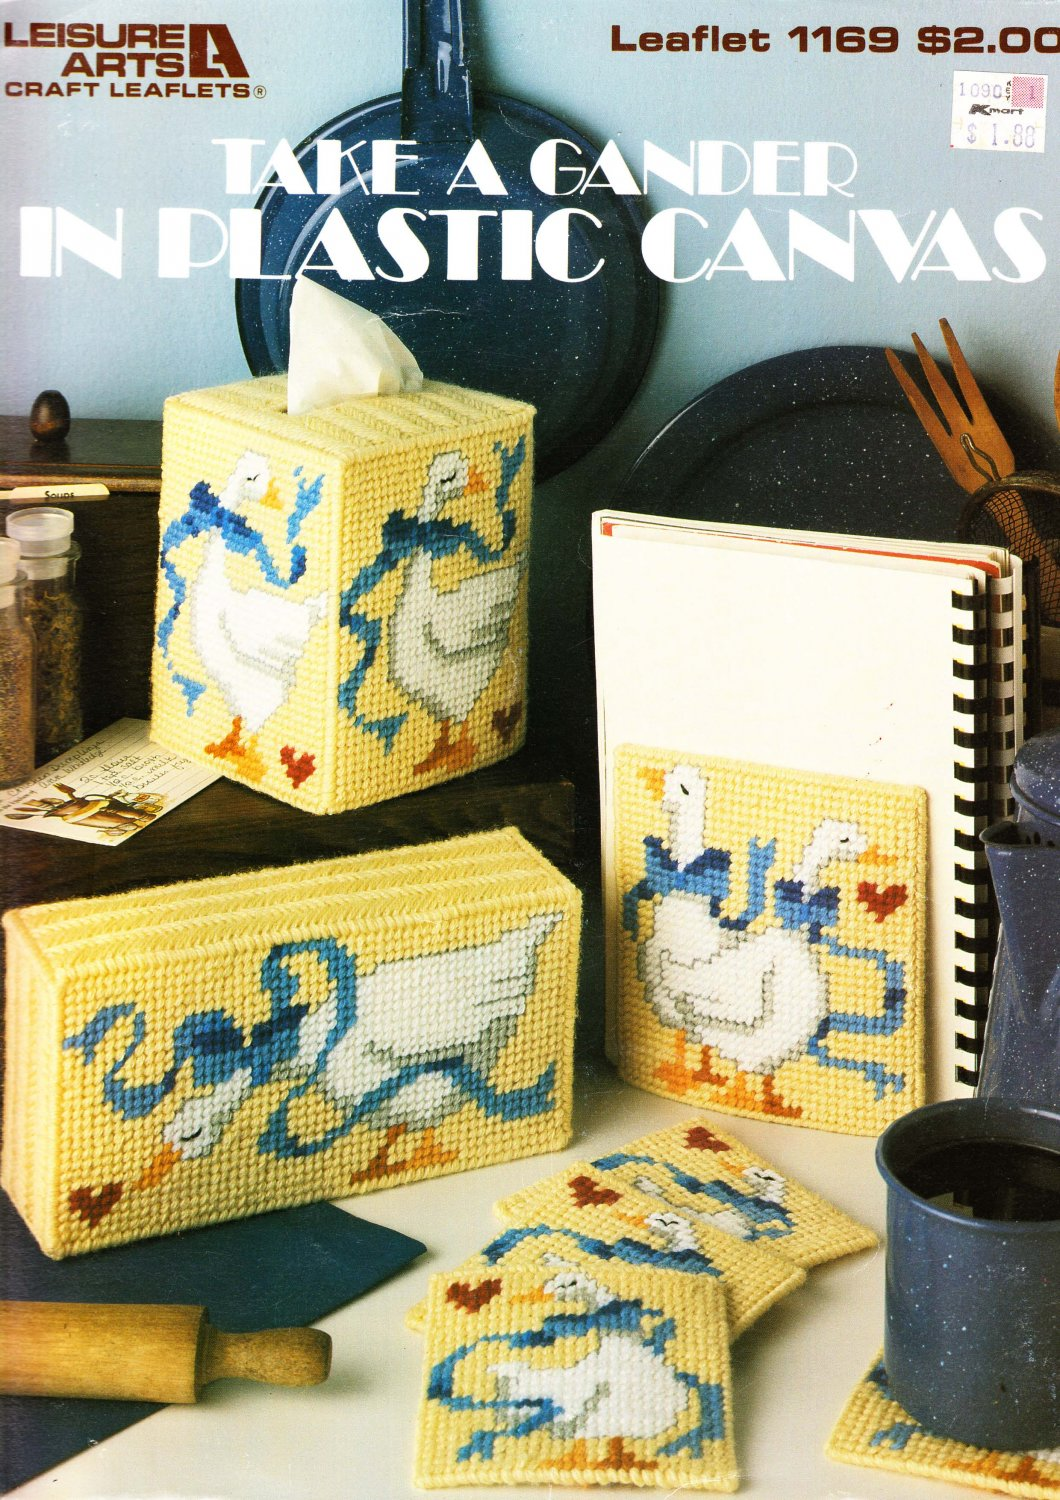 Leisure Arts 1988 Patterns Craft Leaflet #1169 Take a Gander in Plastic Canvas